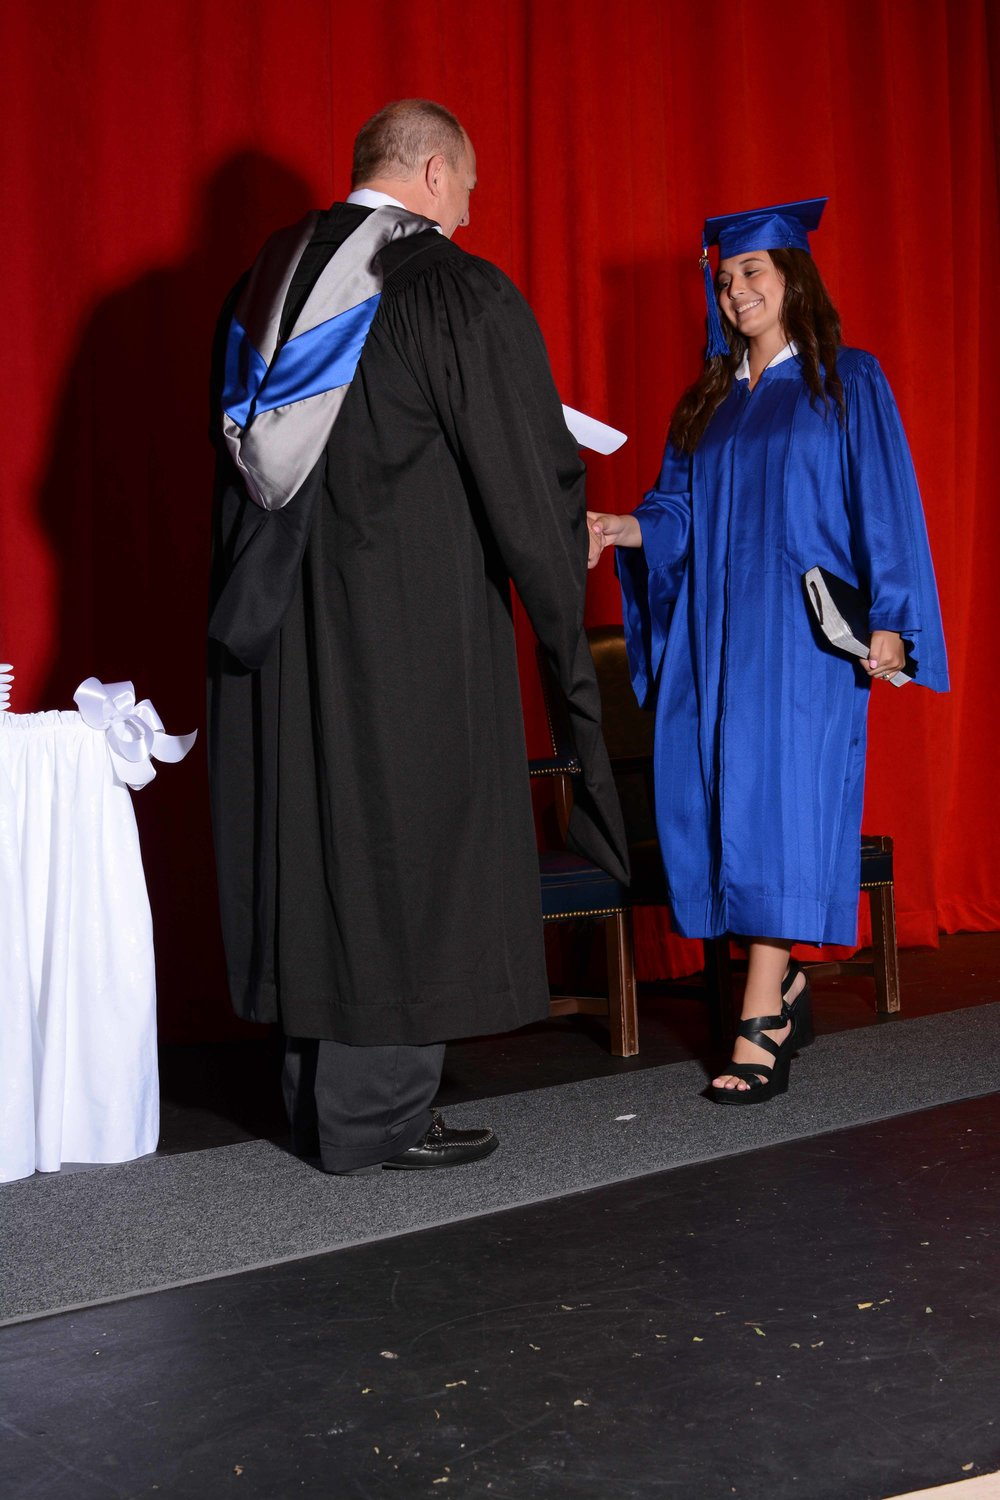 May15 HardingGraduation117.jpg